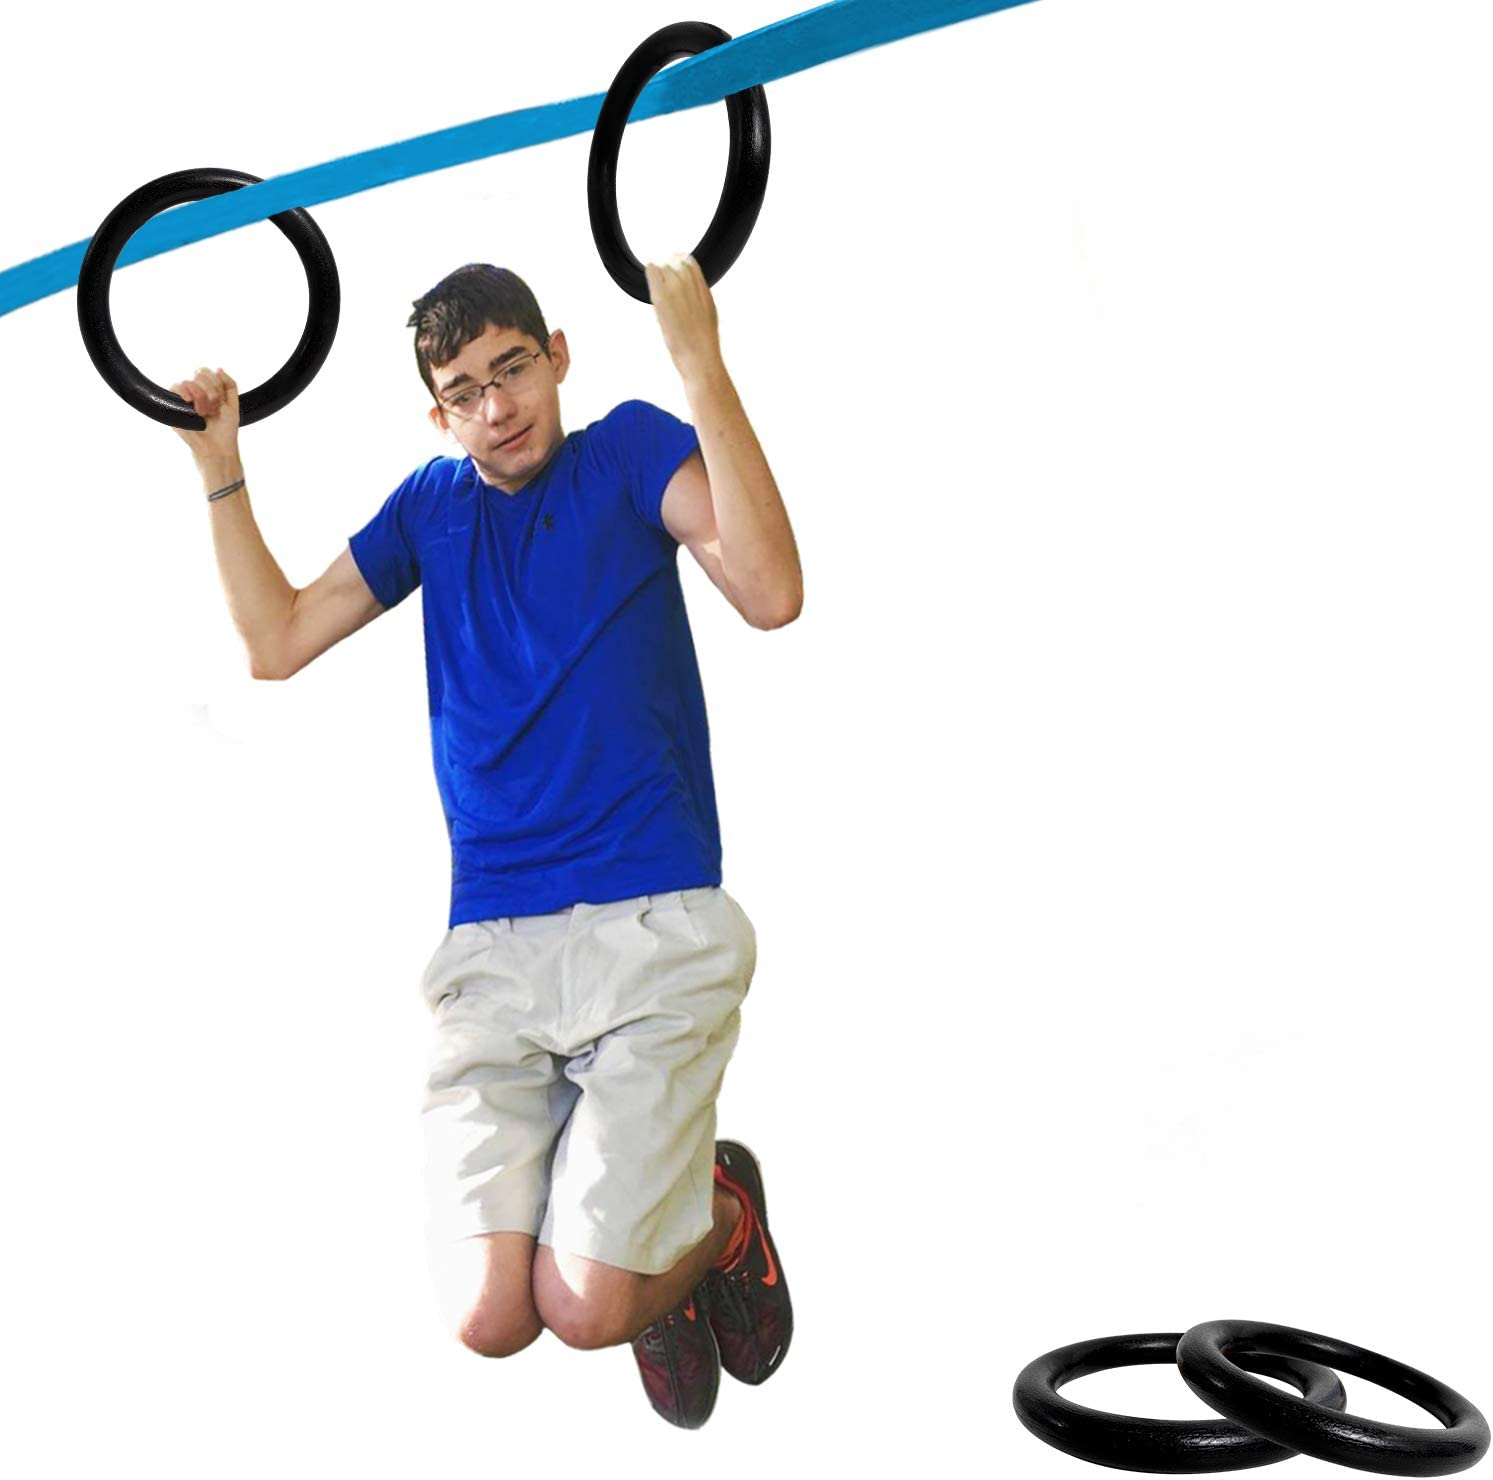 Winslow&Ross Swing Gymnastic Rings, 1500lbs Capacity Backyard Ninja Warrior Obstacle Course, Family Gym Training Body Building Equipment for Both Kids Parents (2pcs)